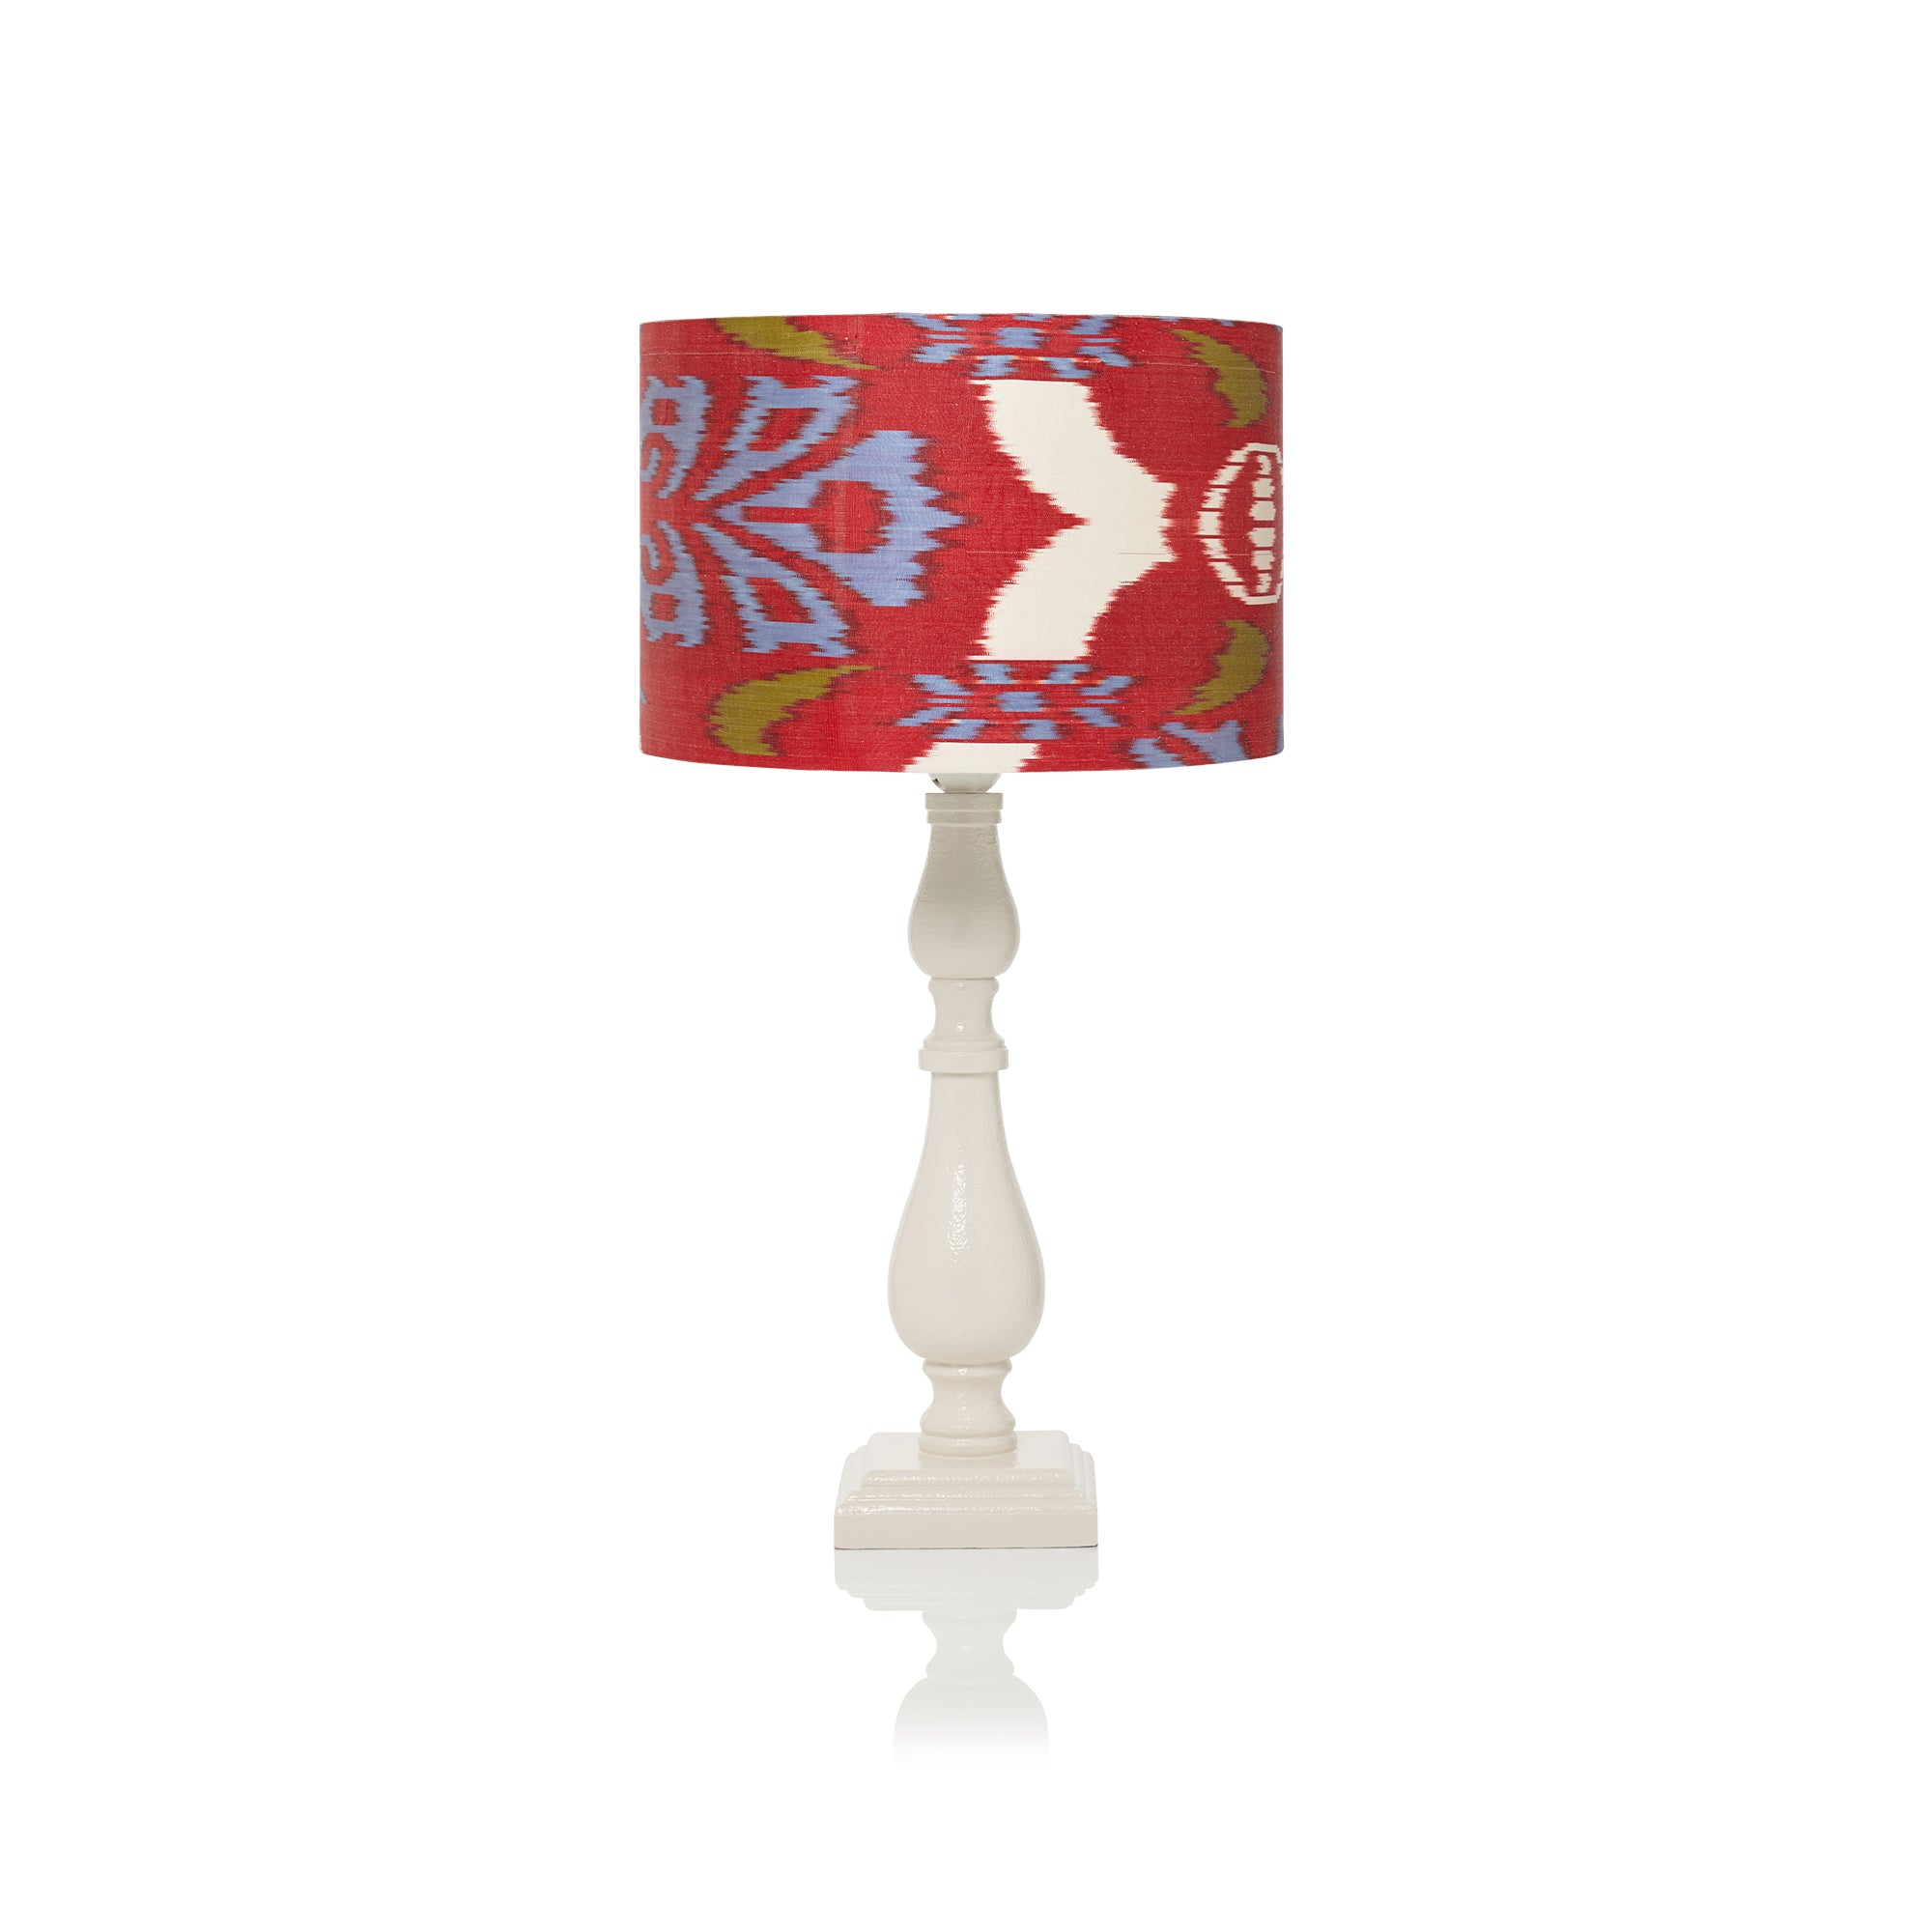 MEDIUM STRETCHED RED AND BLUE IKAT LAMPSHADE